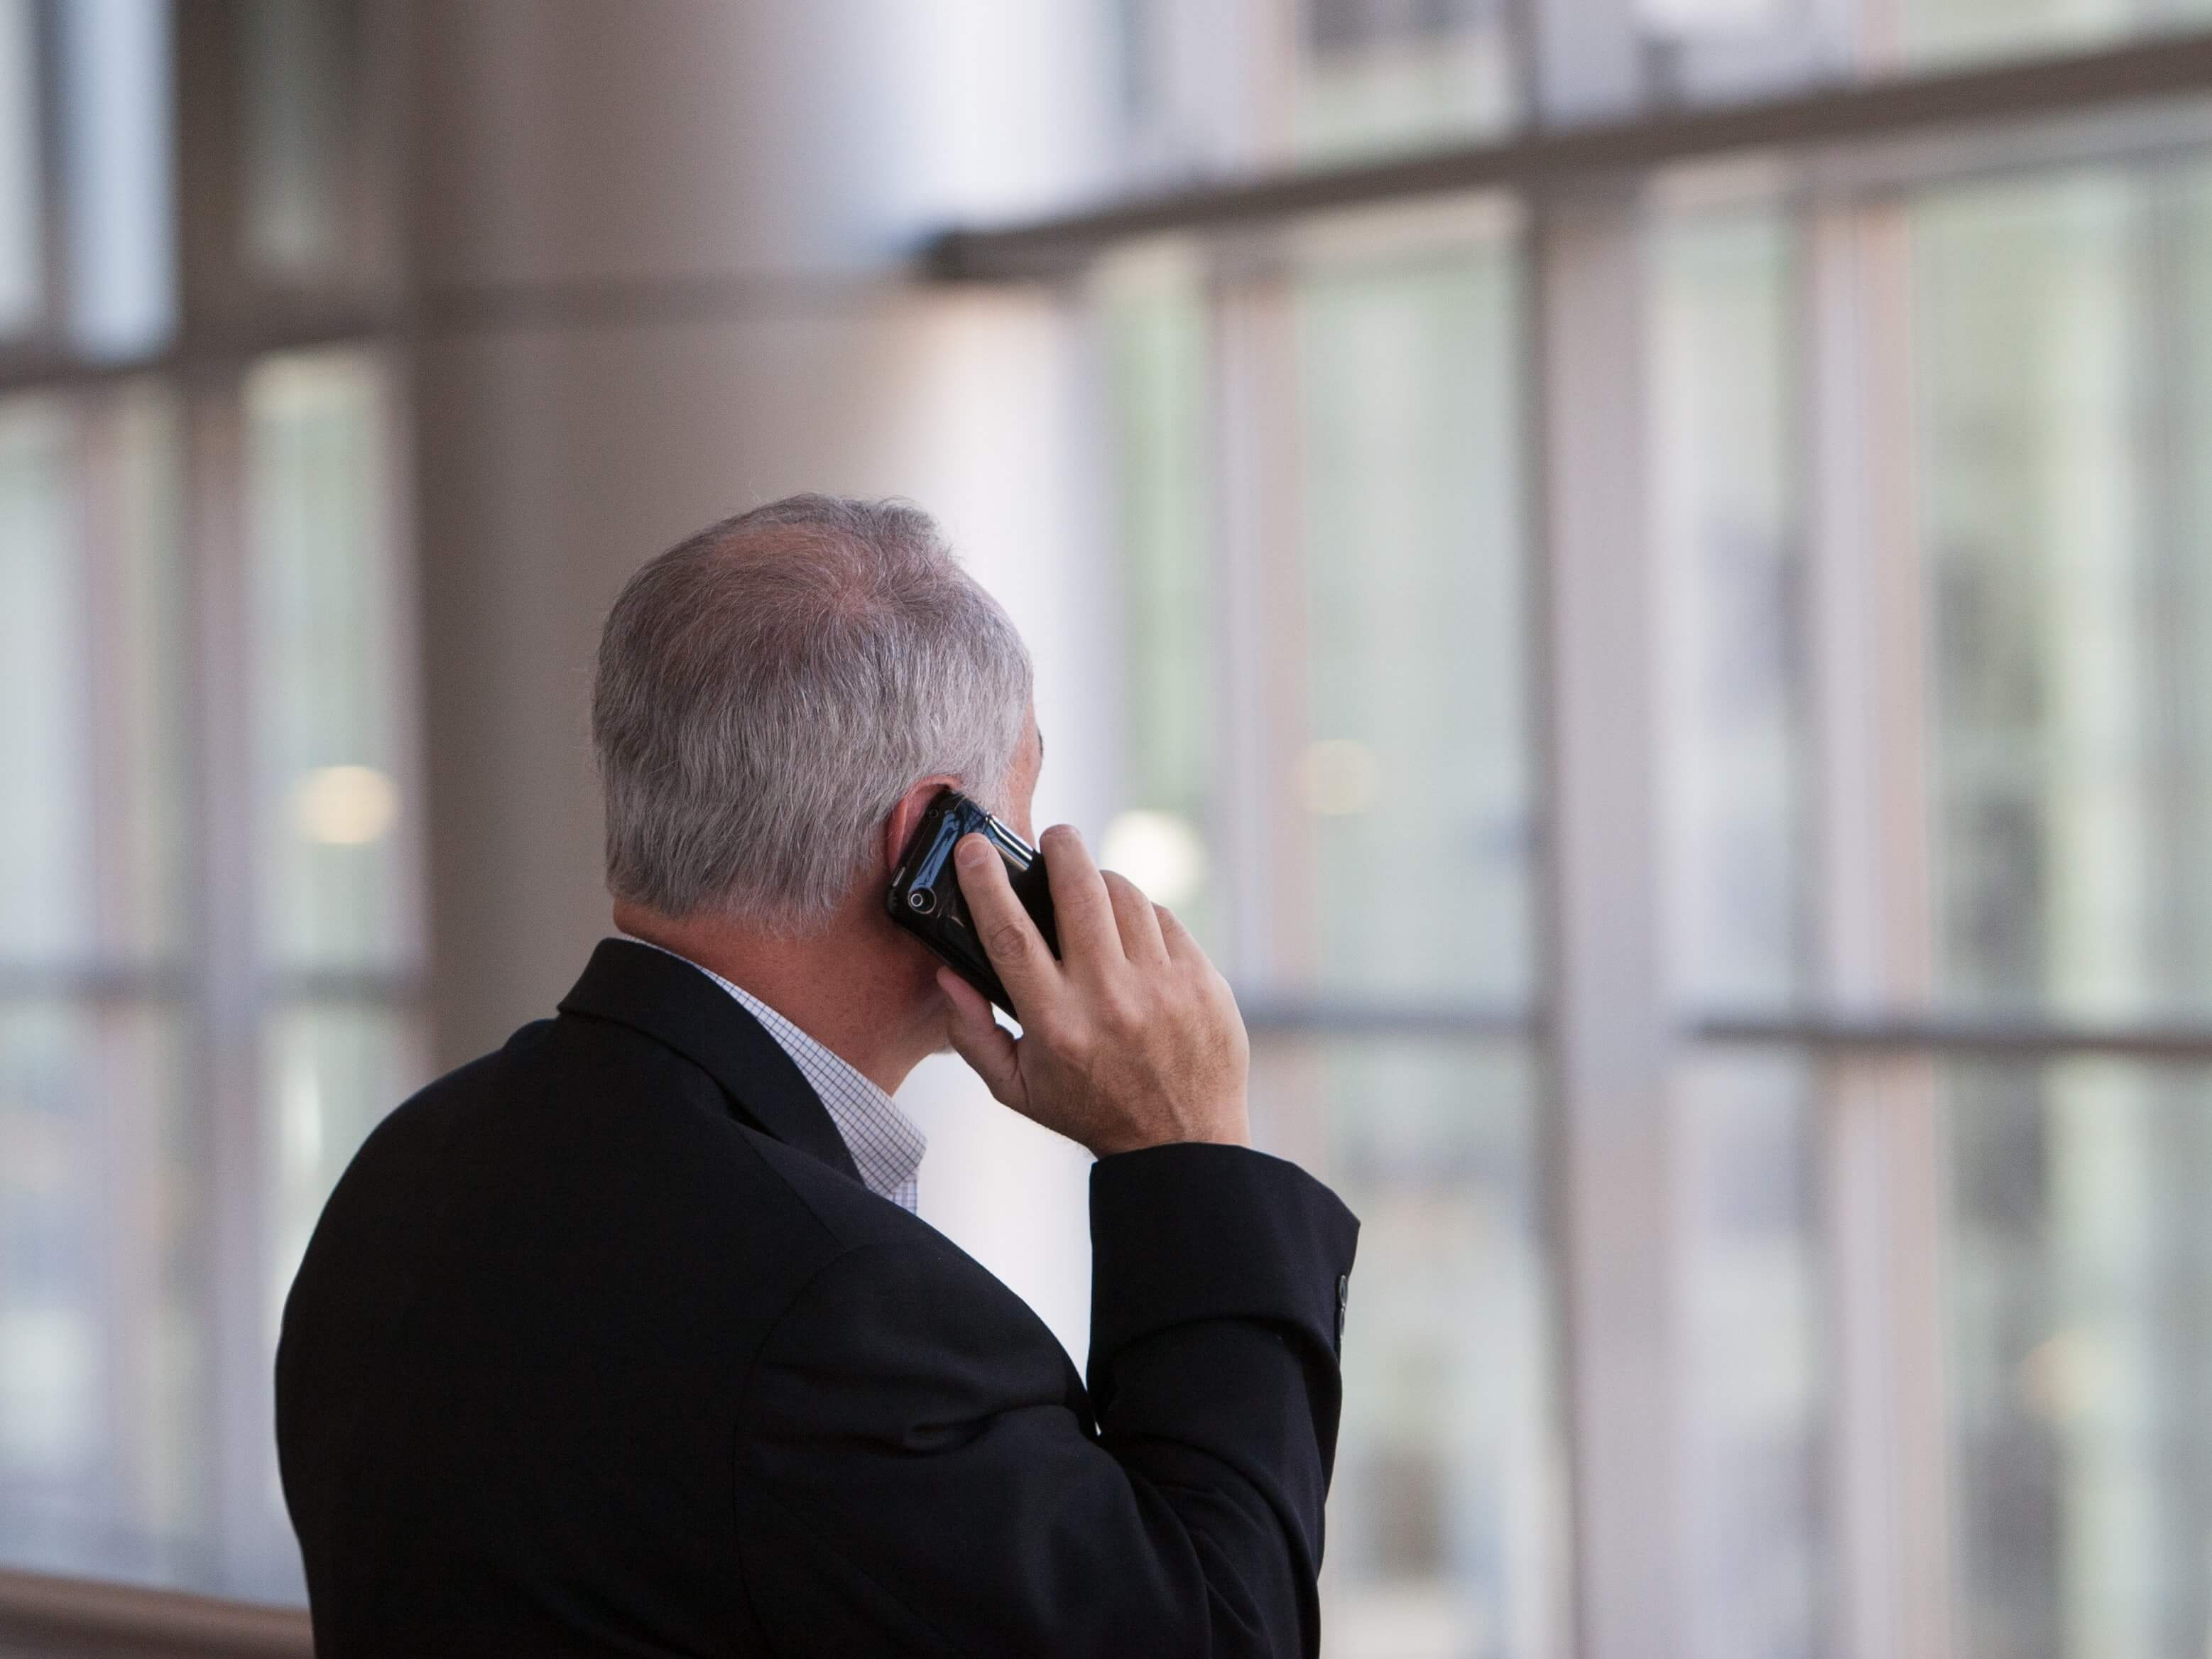 How can you tell if a phone number is fake?